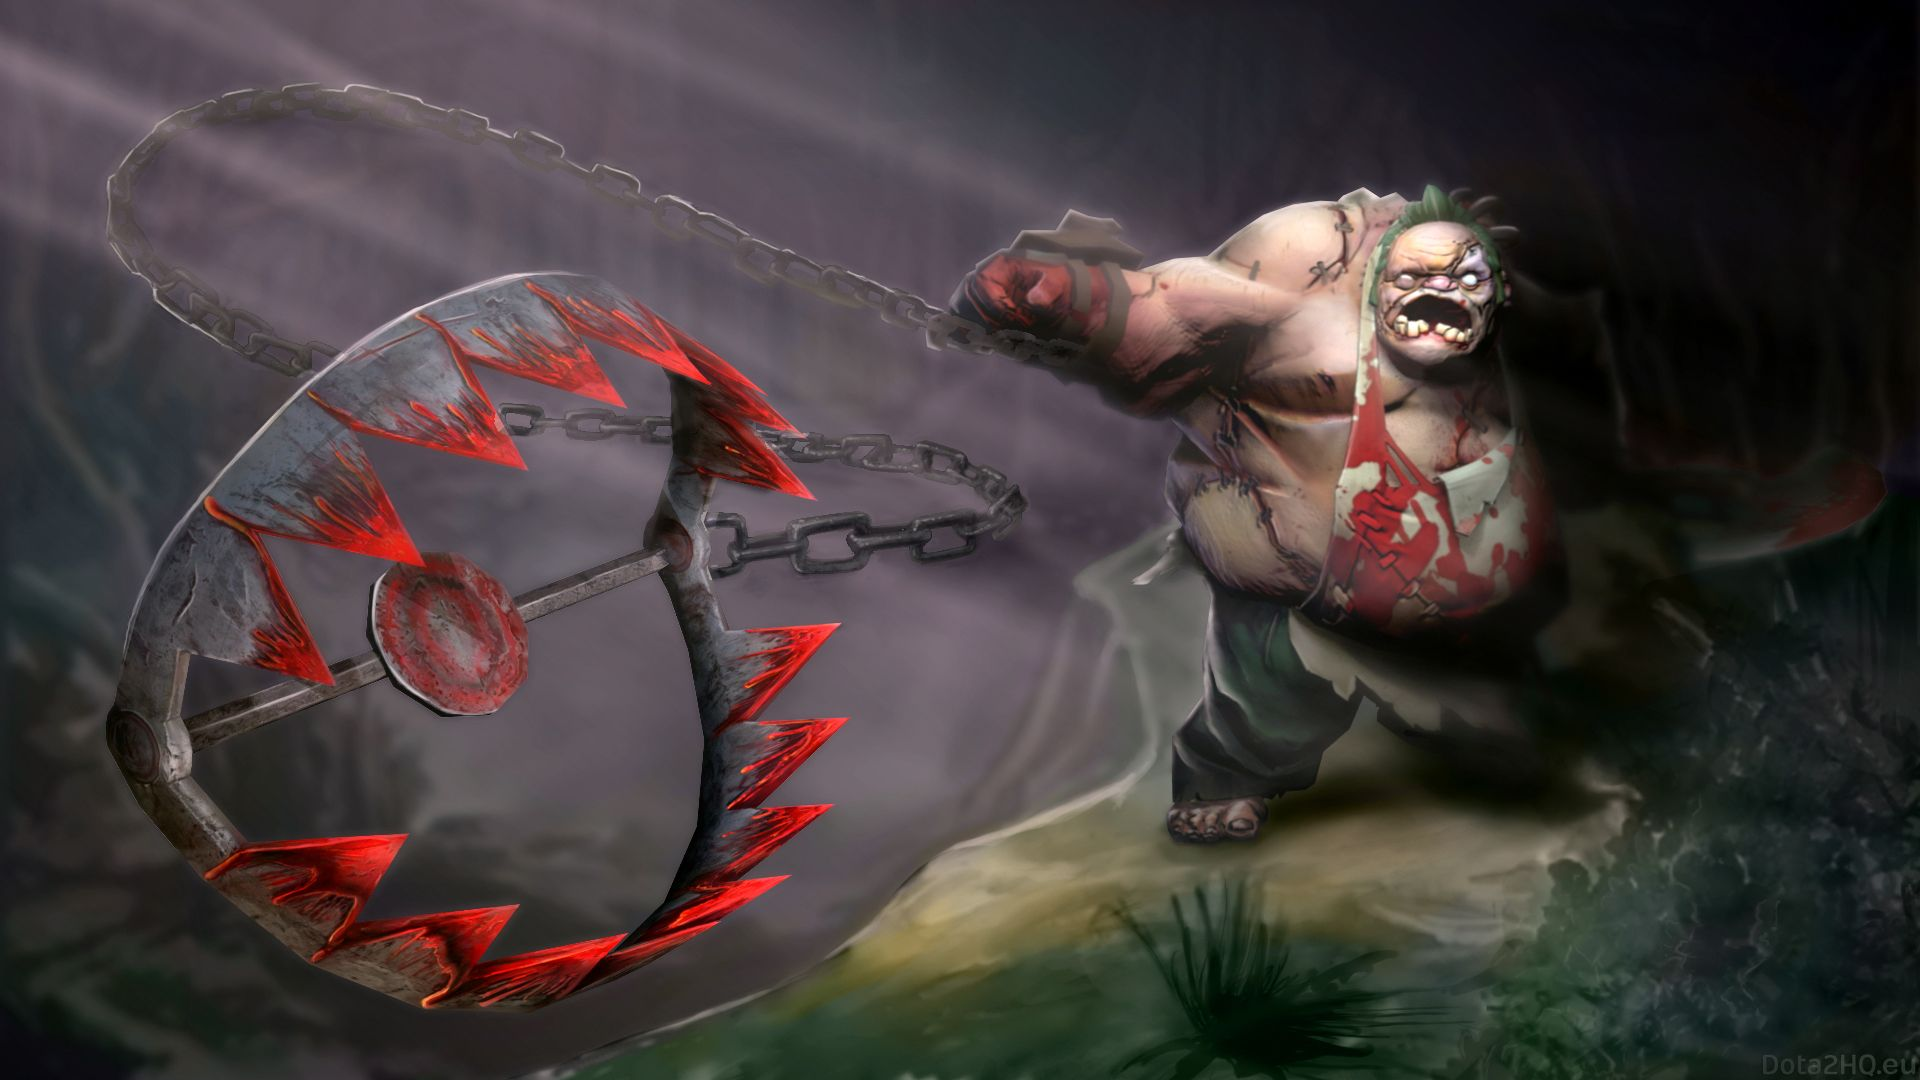 Download Wallpaper 1920x1080 Pudge, Dota 2, Art Full HD 1080p HD Background  | Game pictures, Dota 2, Dota 2 wallpaper